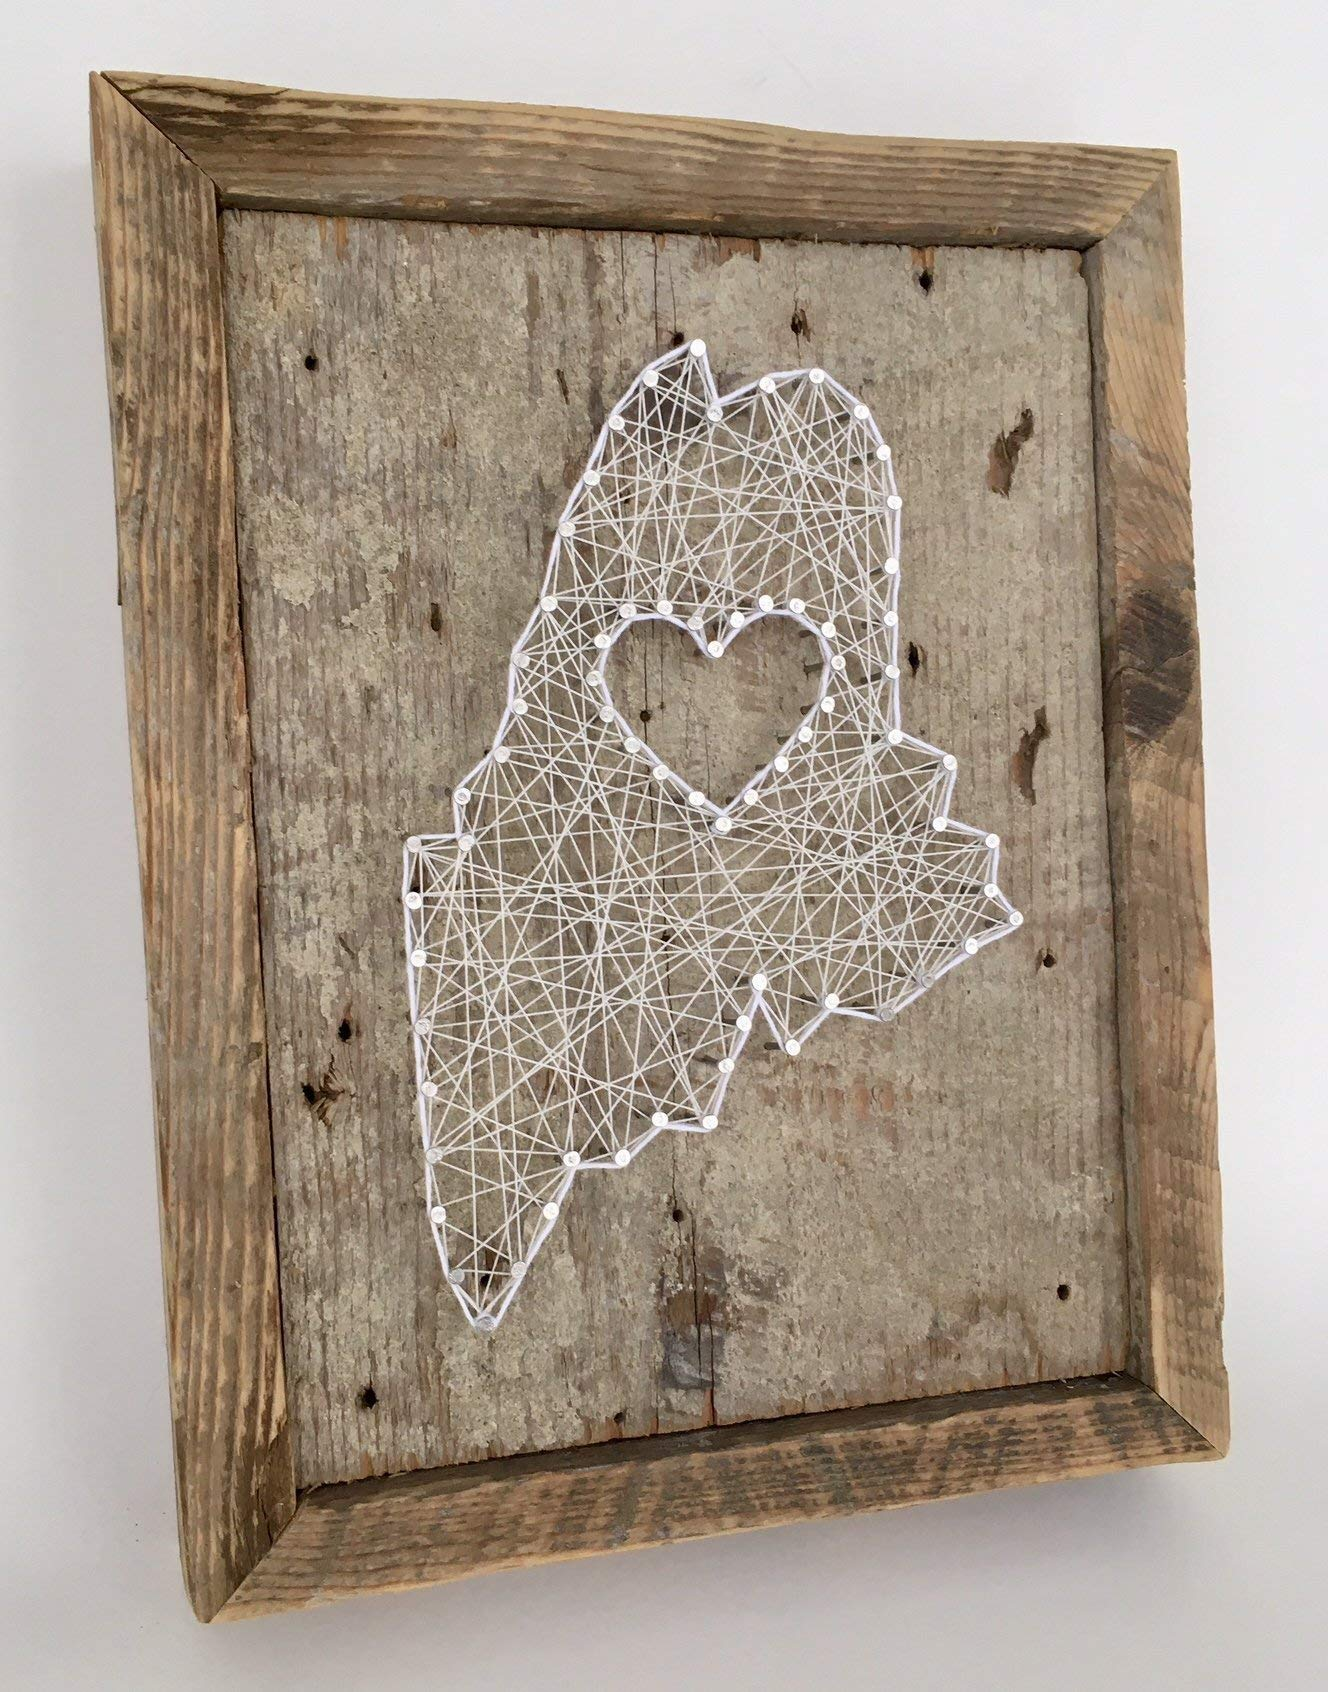 Framed Maine love reclaimed wooden string art sign- A unique Wedding, Anniversary, Birthday, Valentine's Day, Christmas and housewarming gift.